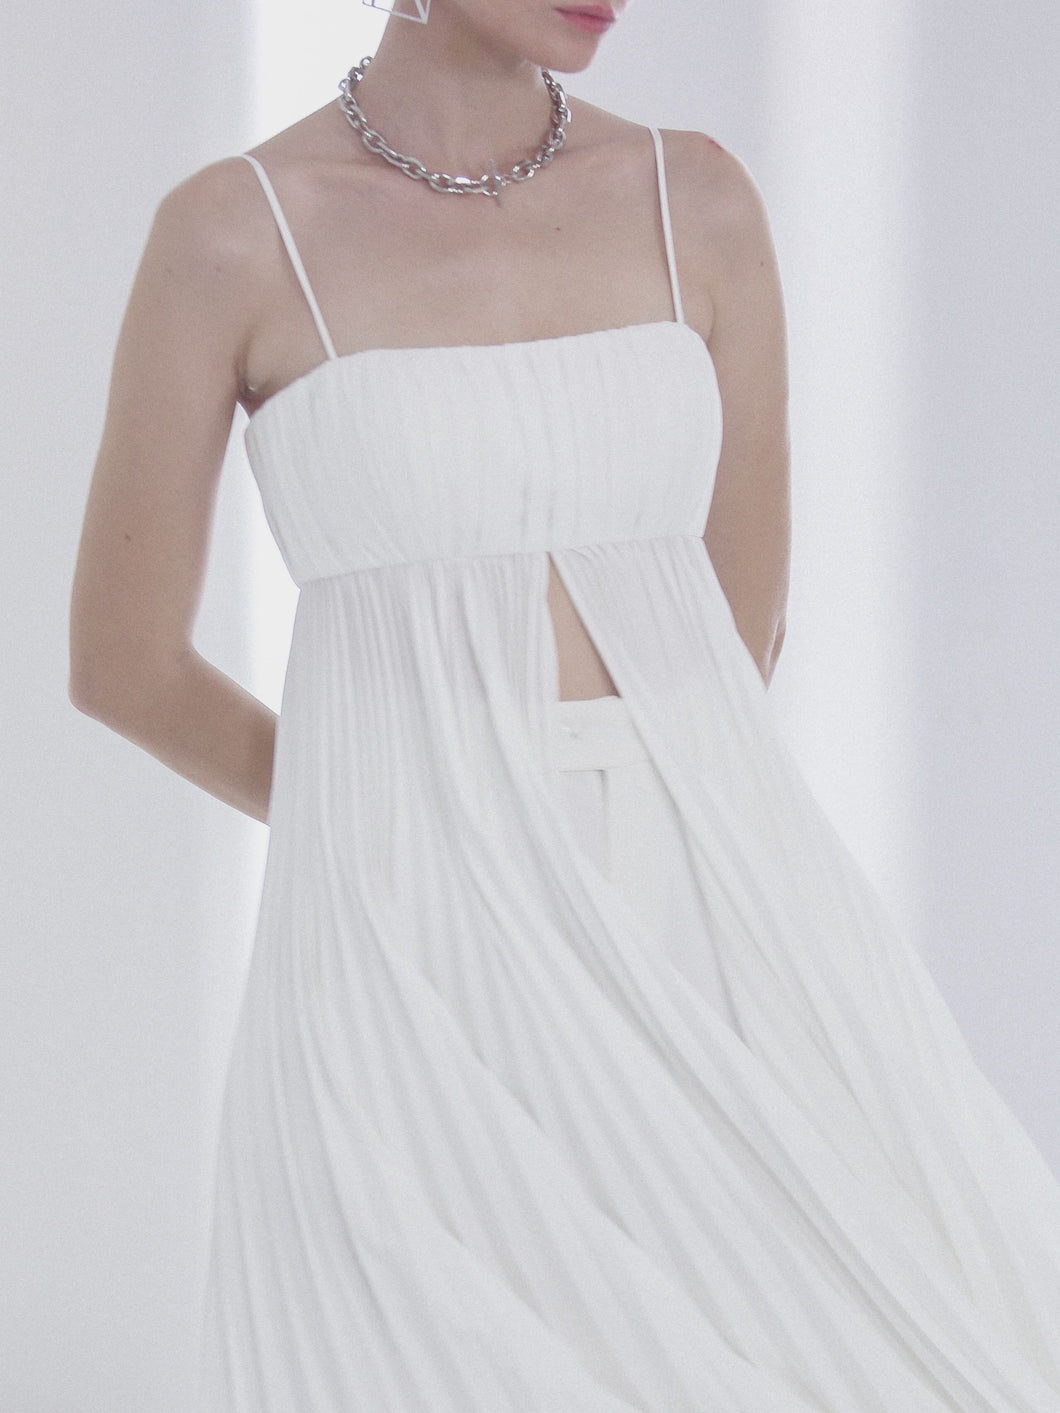 Pleated top in white for women by Klei Studio.